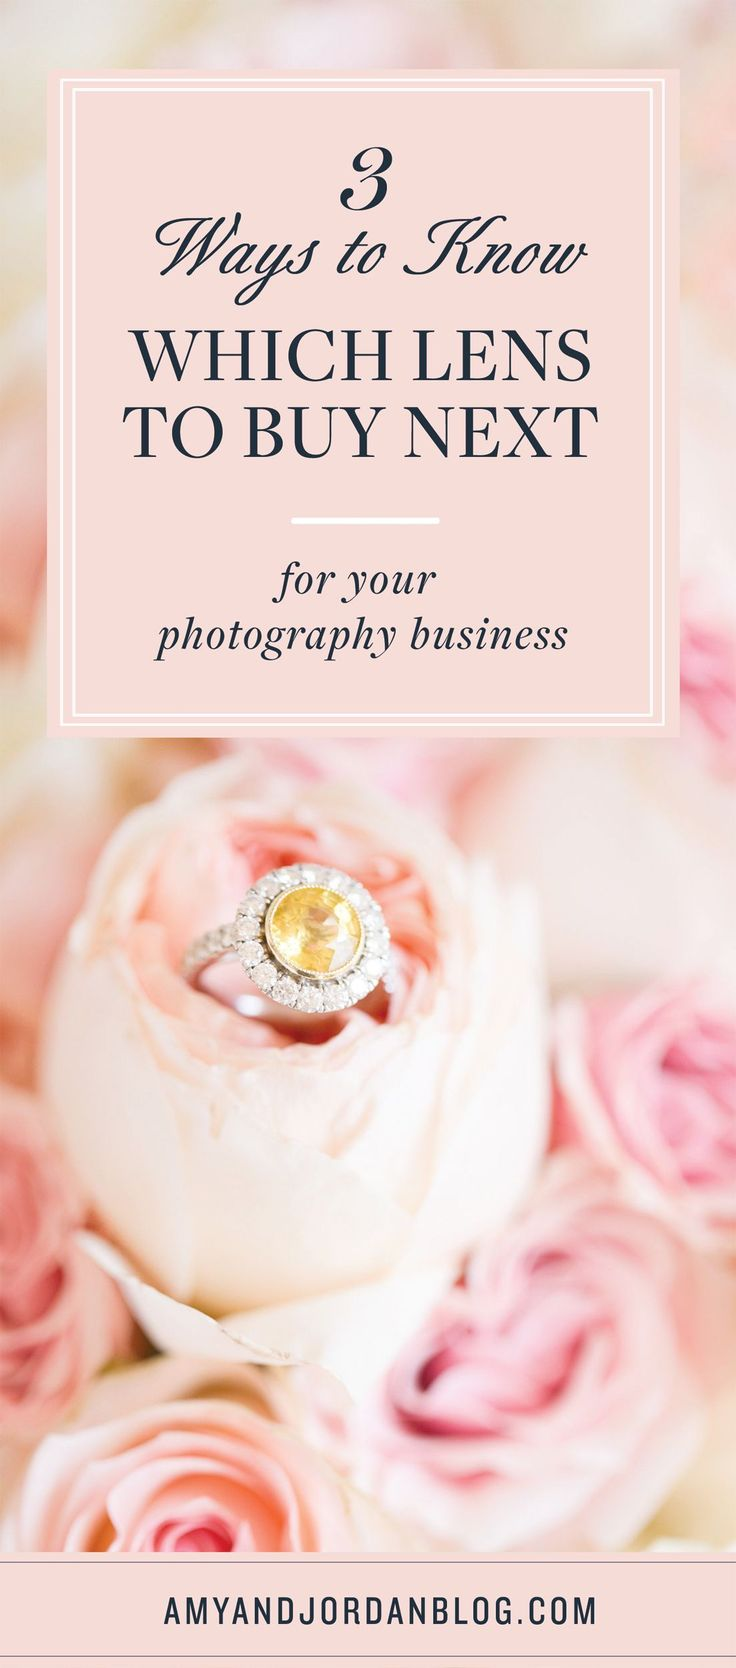 3 ways to know which lens to buy next for your photography business.